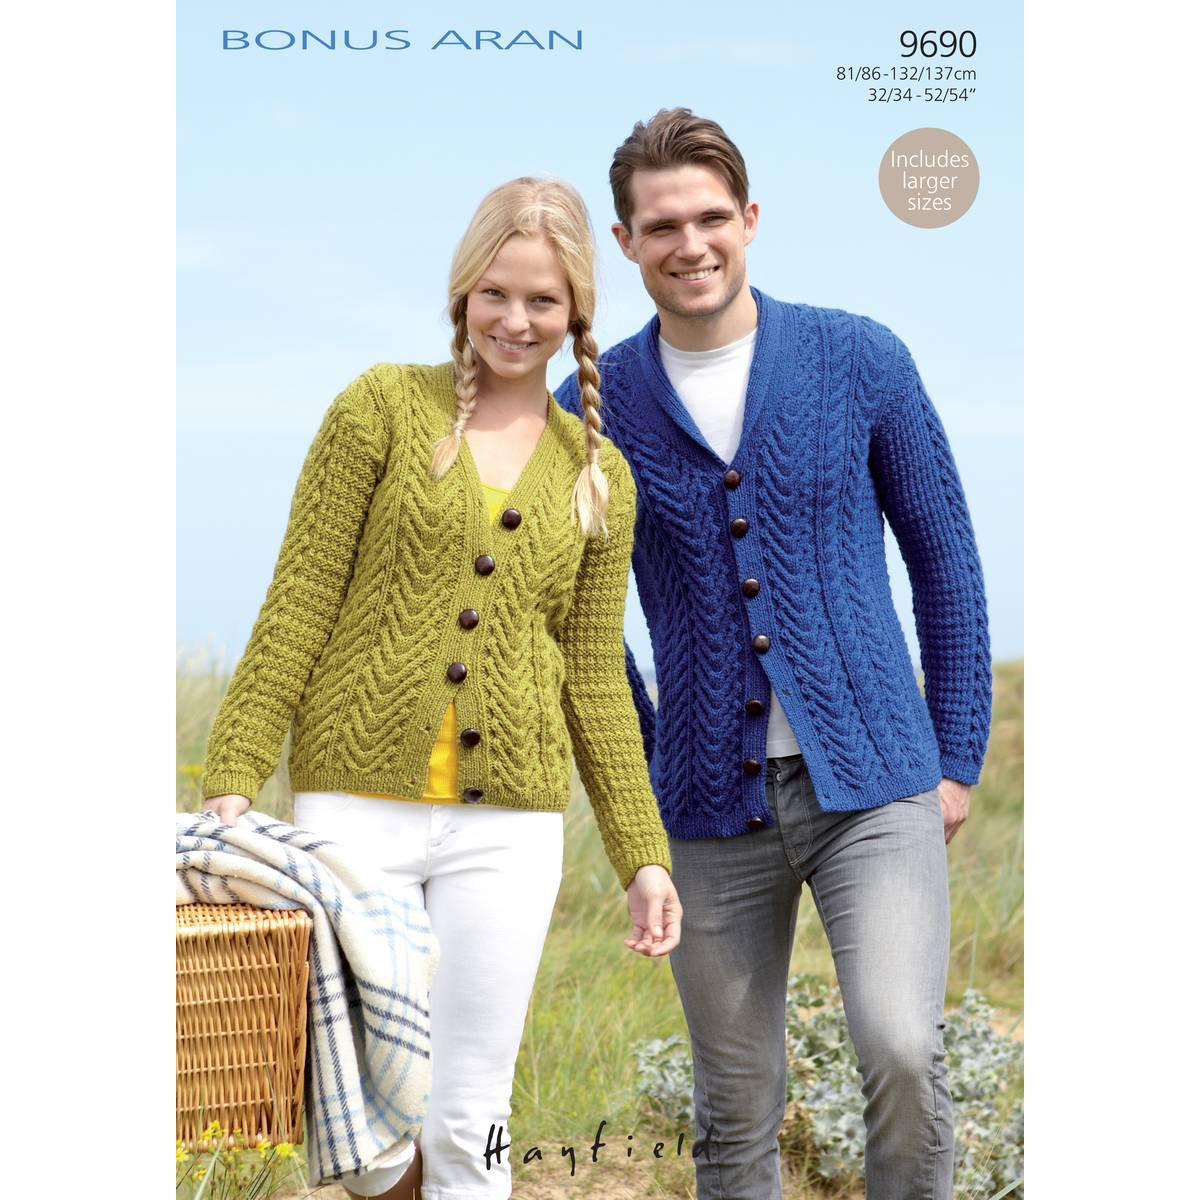 Cardigan Sweater Knitting Pattern Free Pattern Hayfield Bonus Aran Cardigans Knitting Pattern Hobcraft